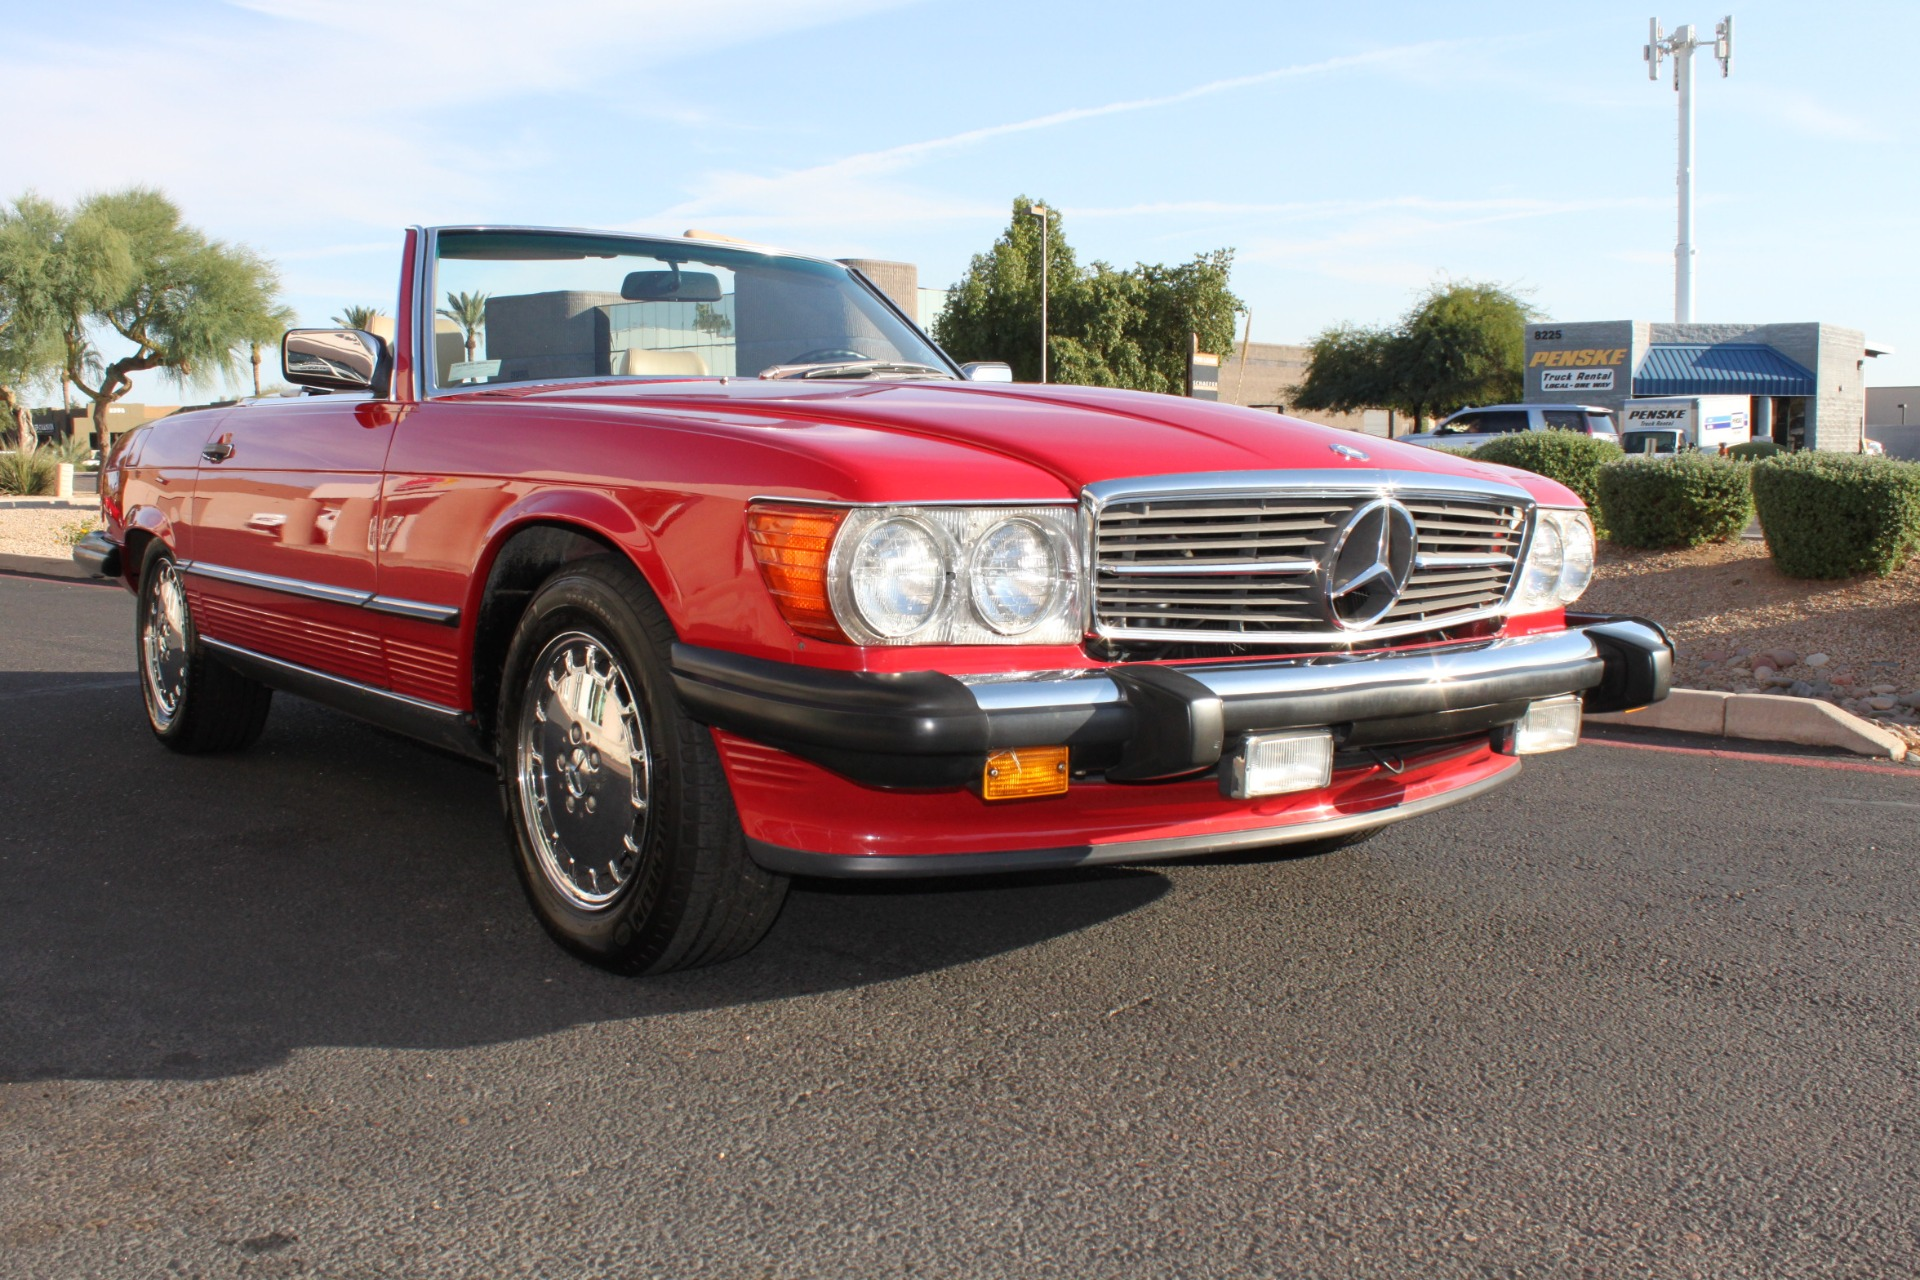 Used-1989-Mercedes-Benz-560-Series-560SL-Mercedes-Benz